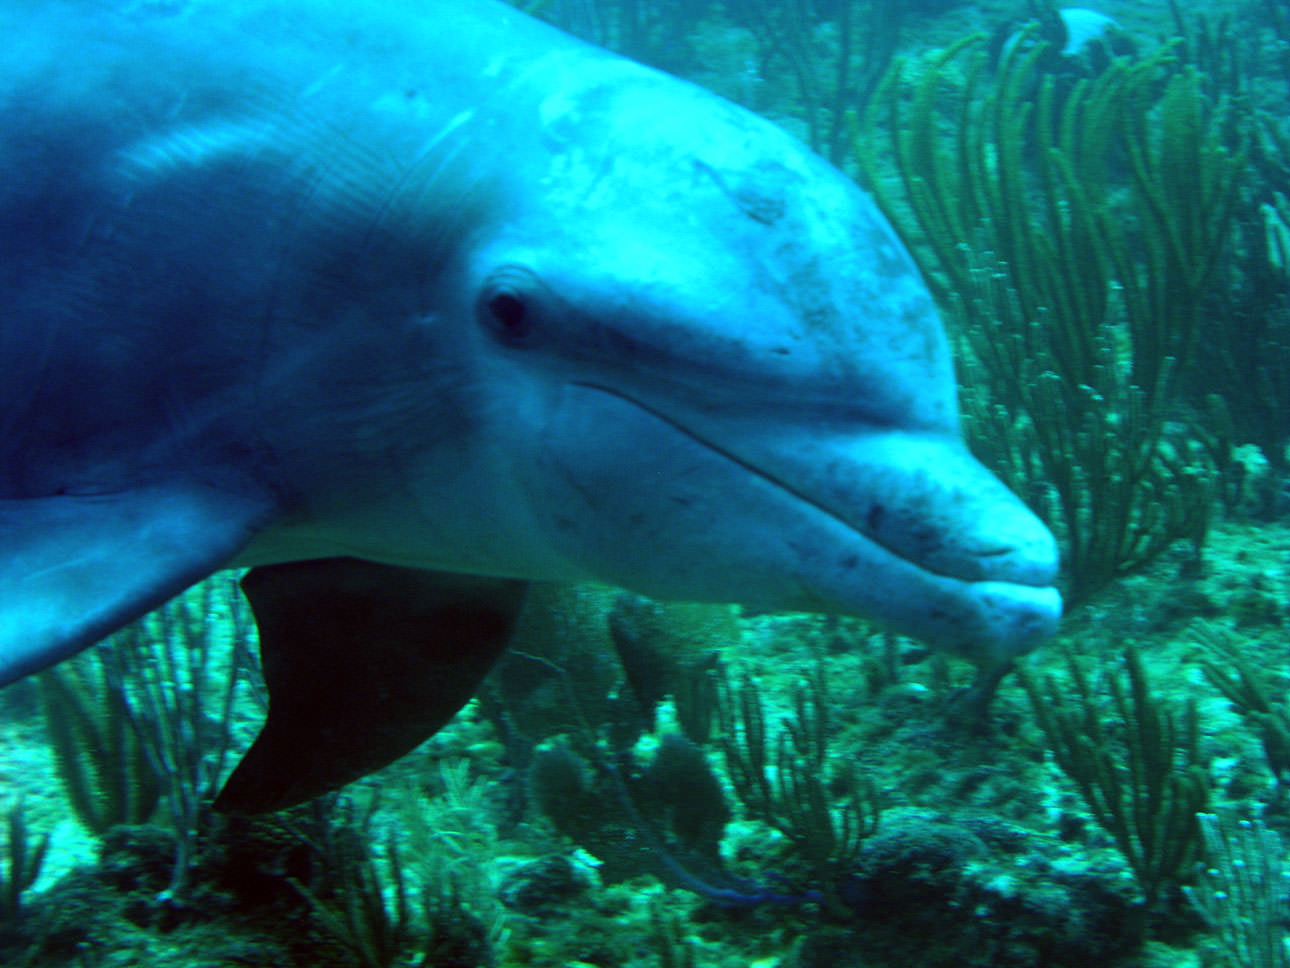 NOAA's National Ocean Service Ocean Images: Dolphins are ...